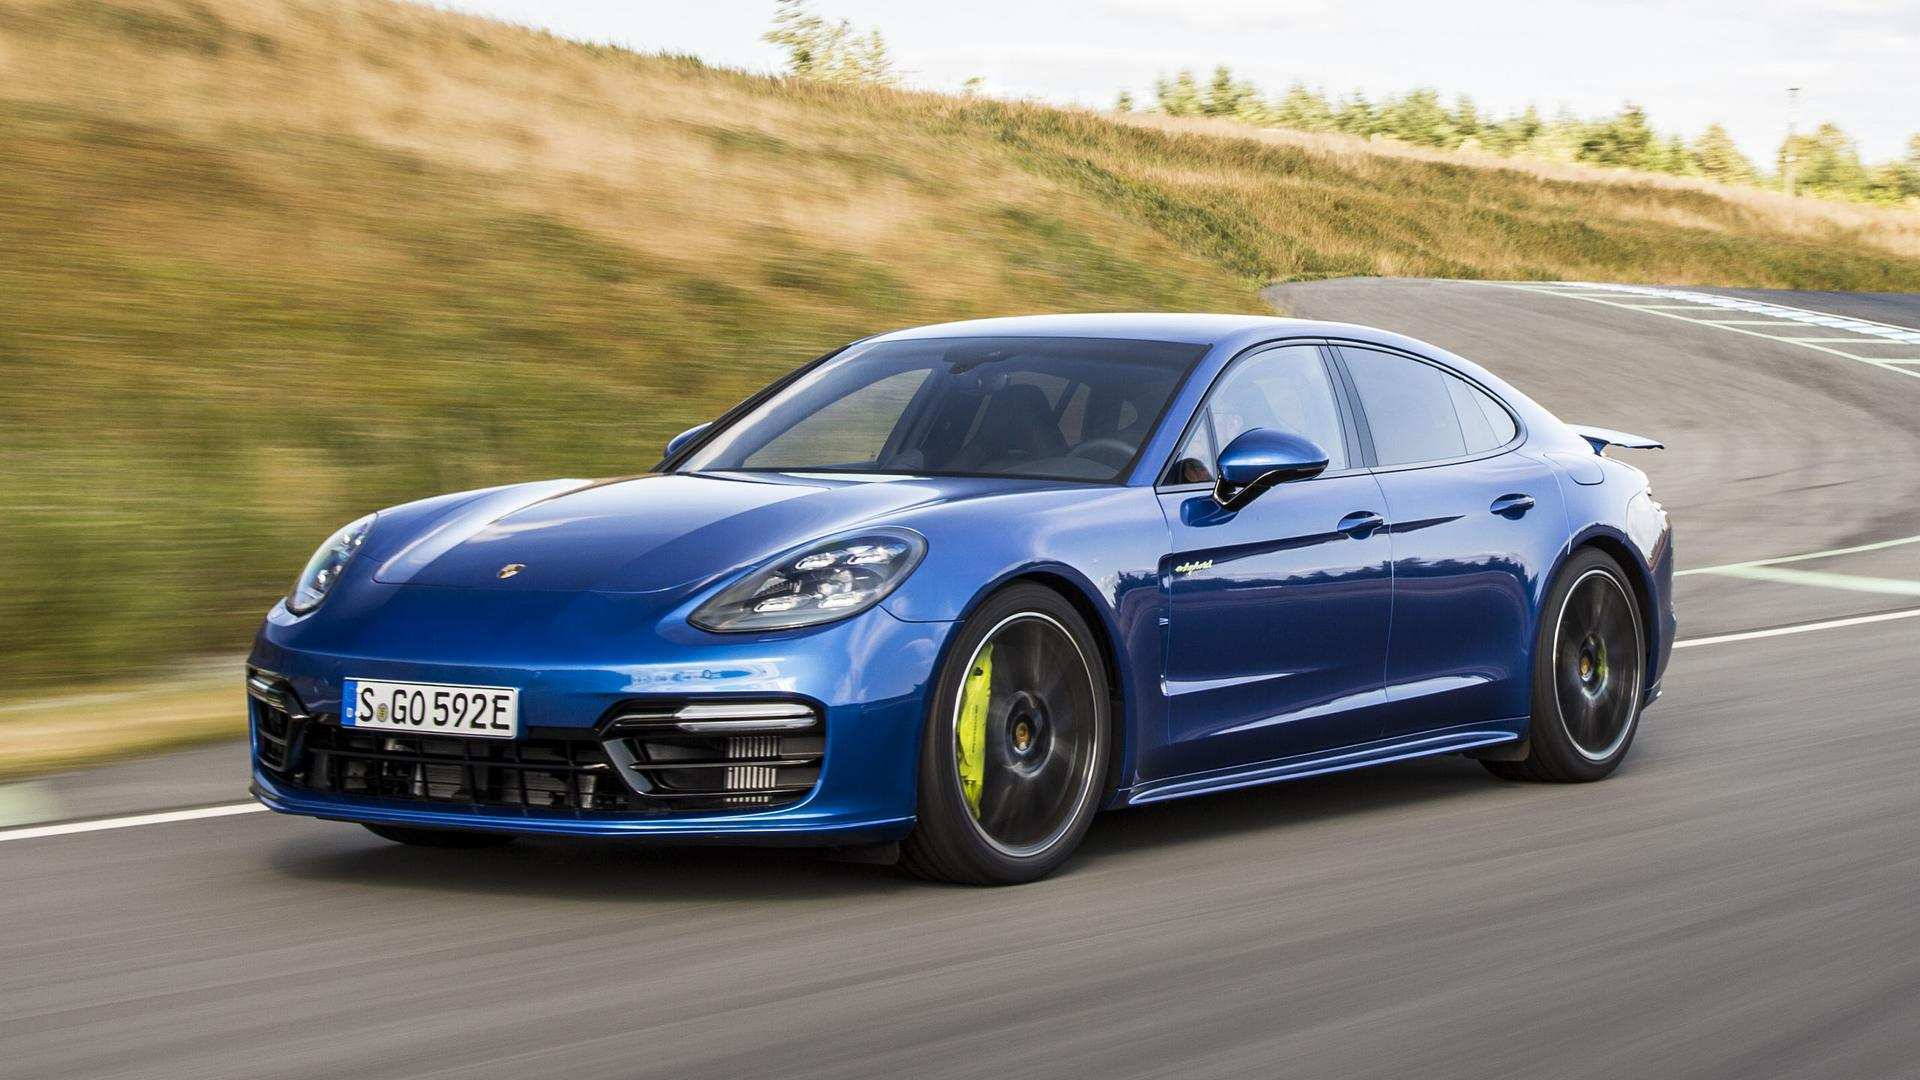 82 All New 2019 Porsche Panamera Turbo Images